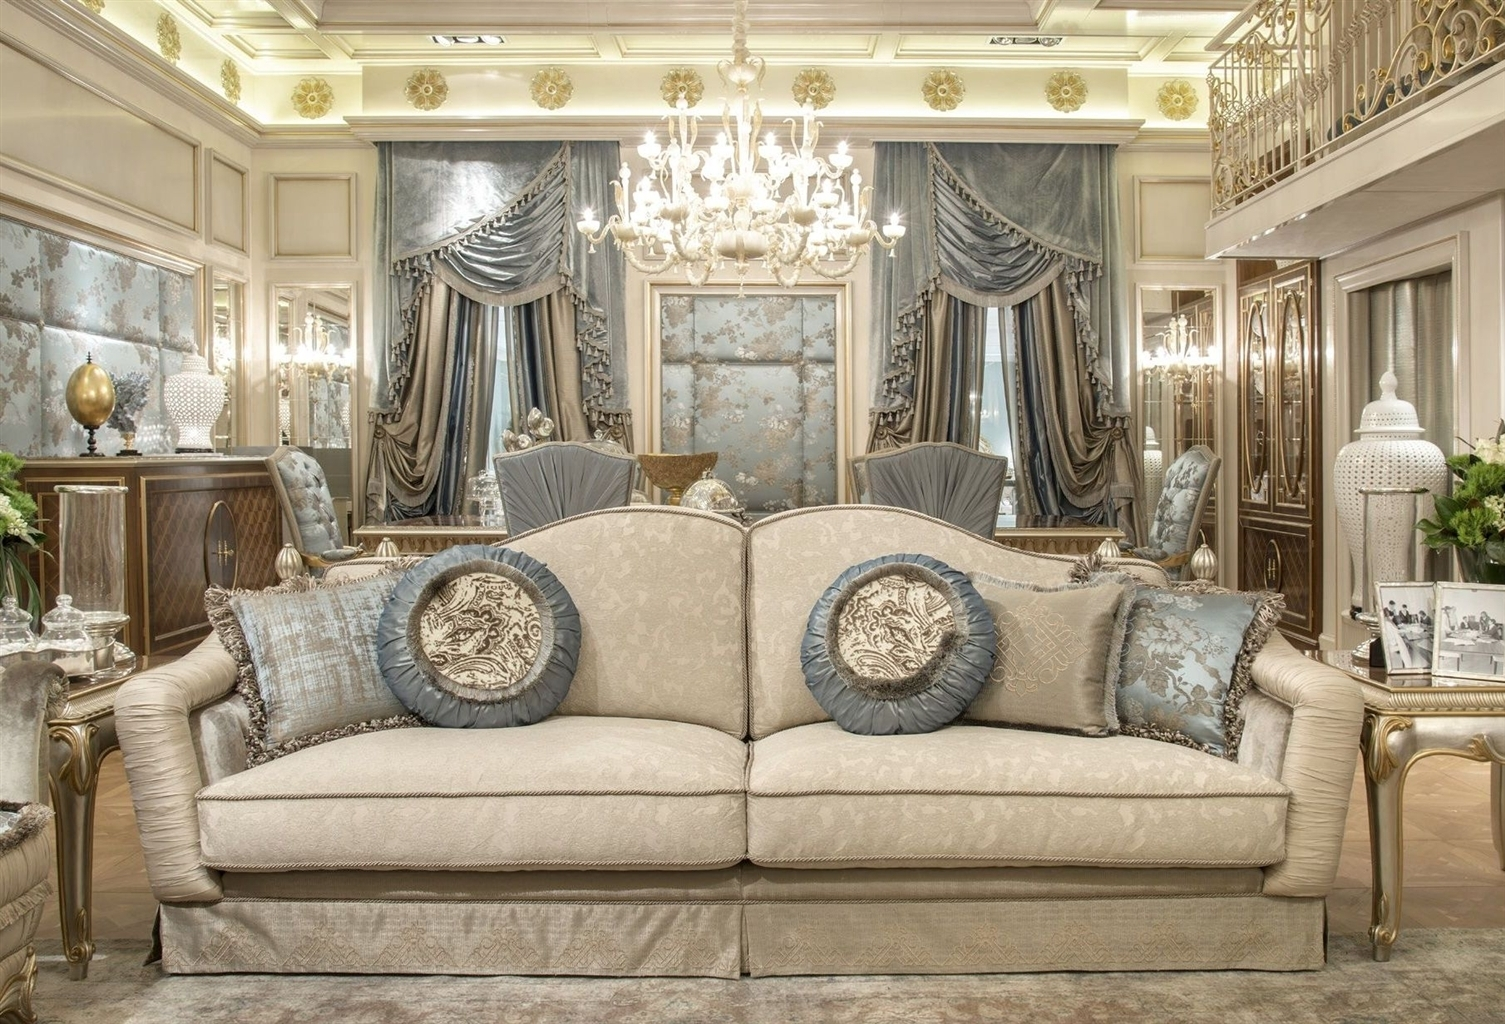 Fine Fabrics Highlight This Extraordinary Hand Made Luxury Sofa. with Luxury Sofas (Image 4 of 10)